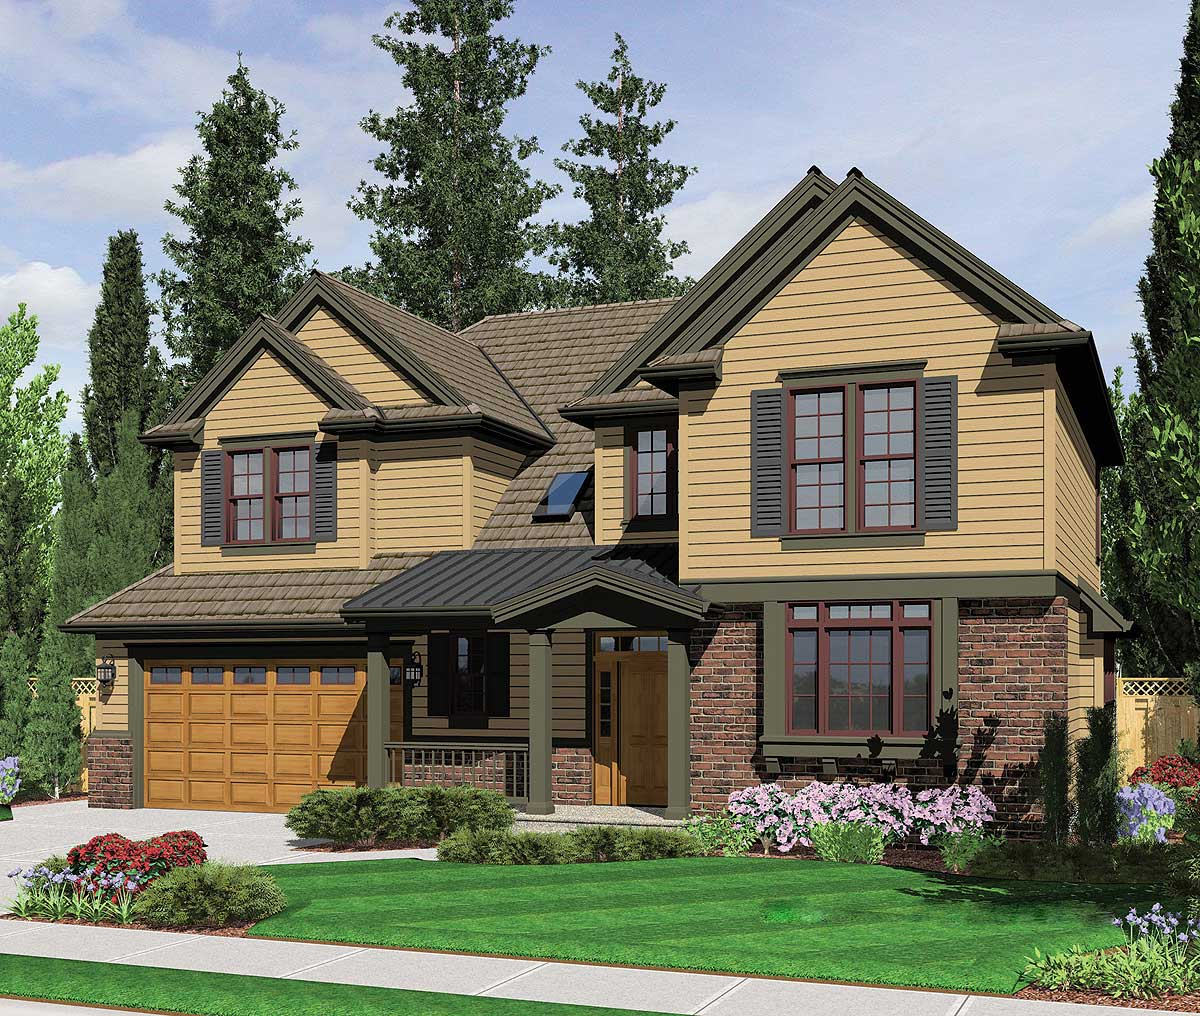 Traditional home plan with classic details 69000am for Traditional farmhouse plans